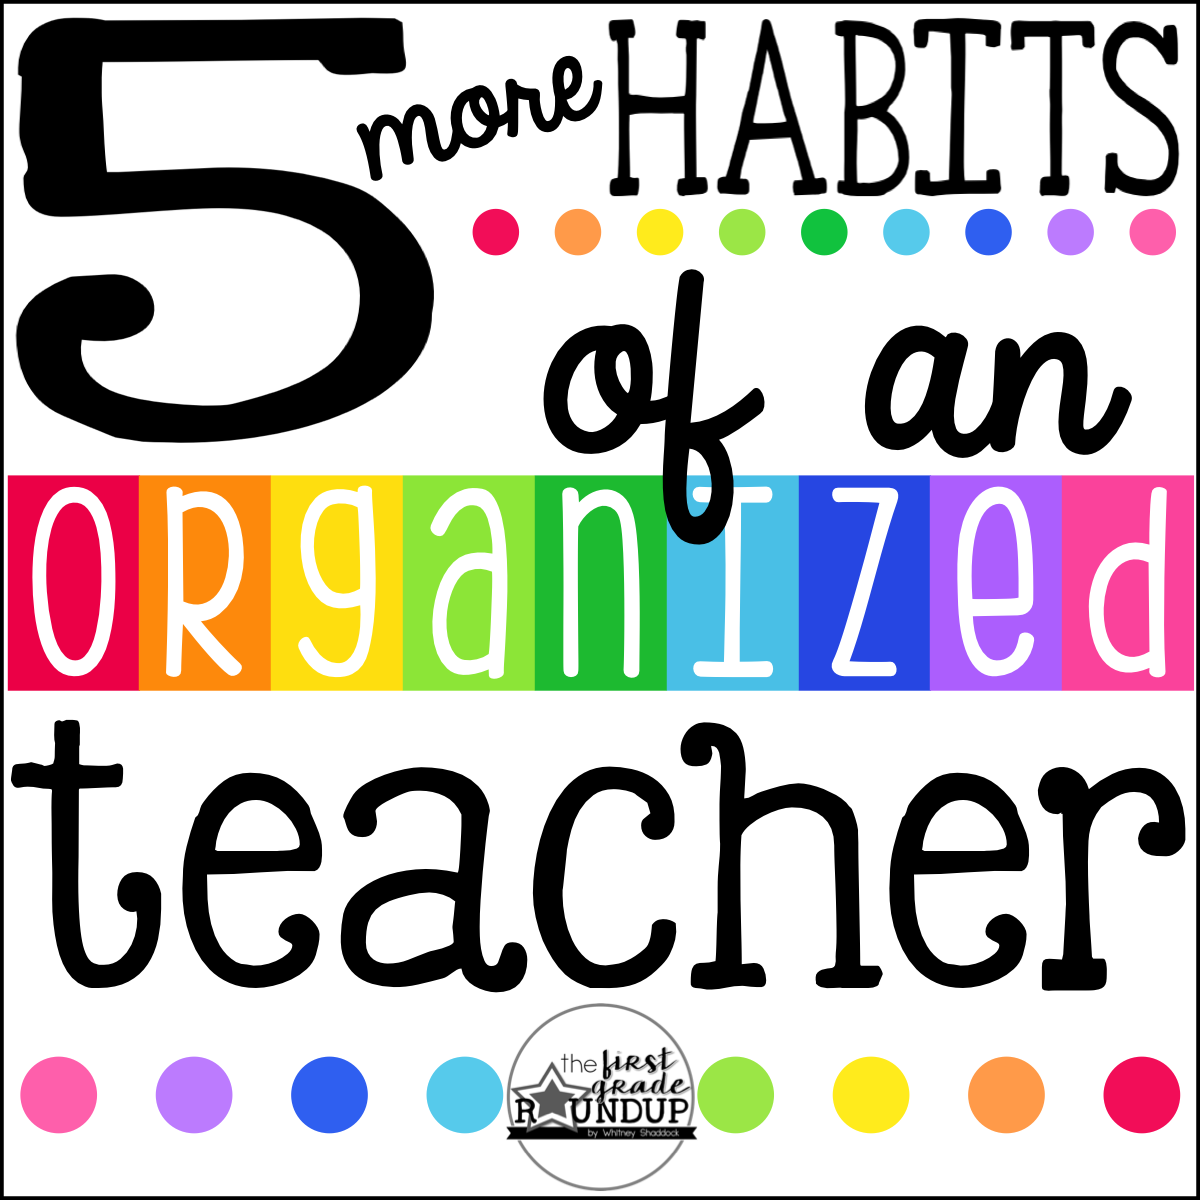 5 MORE Habits of an Organized Teacher Teacher